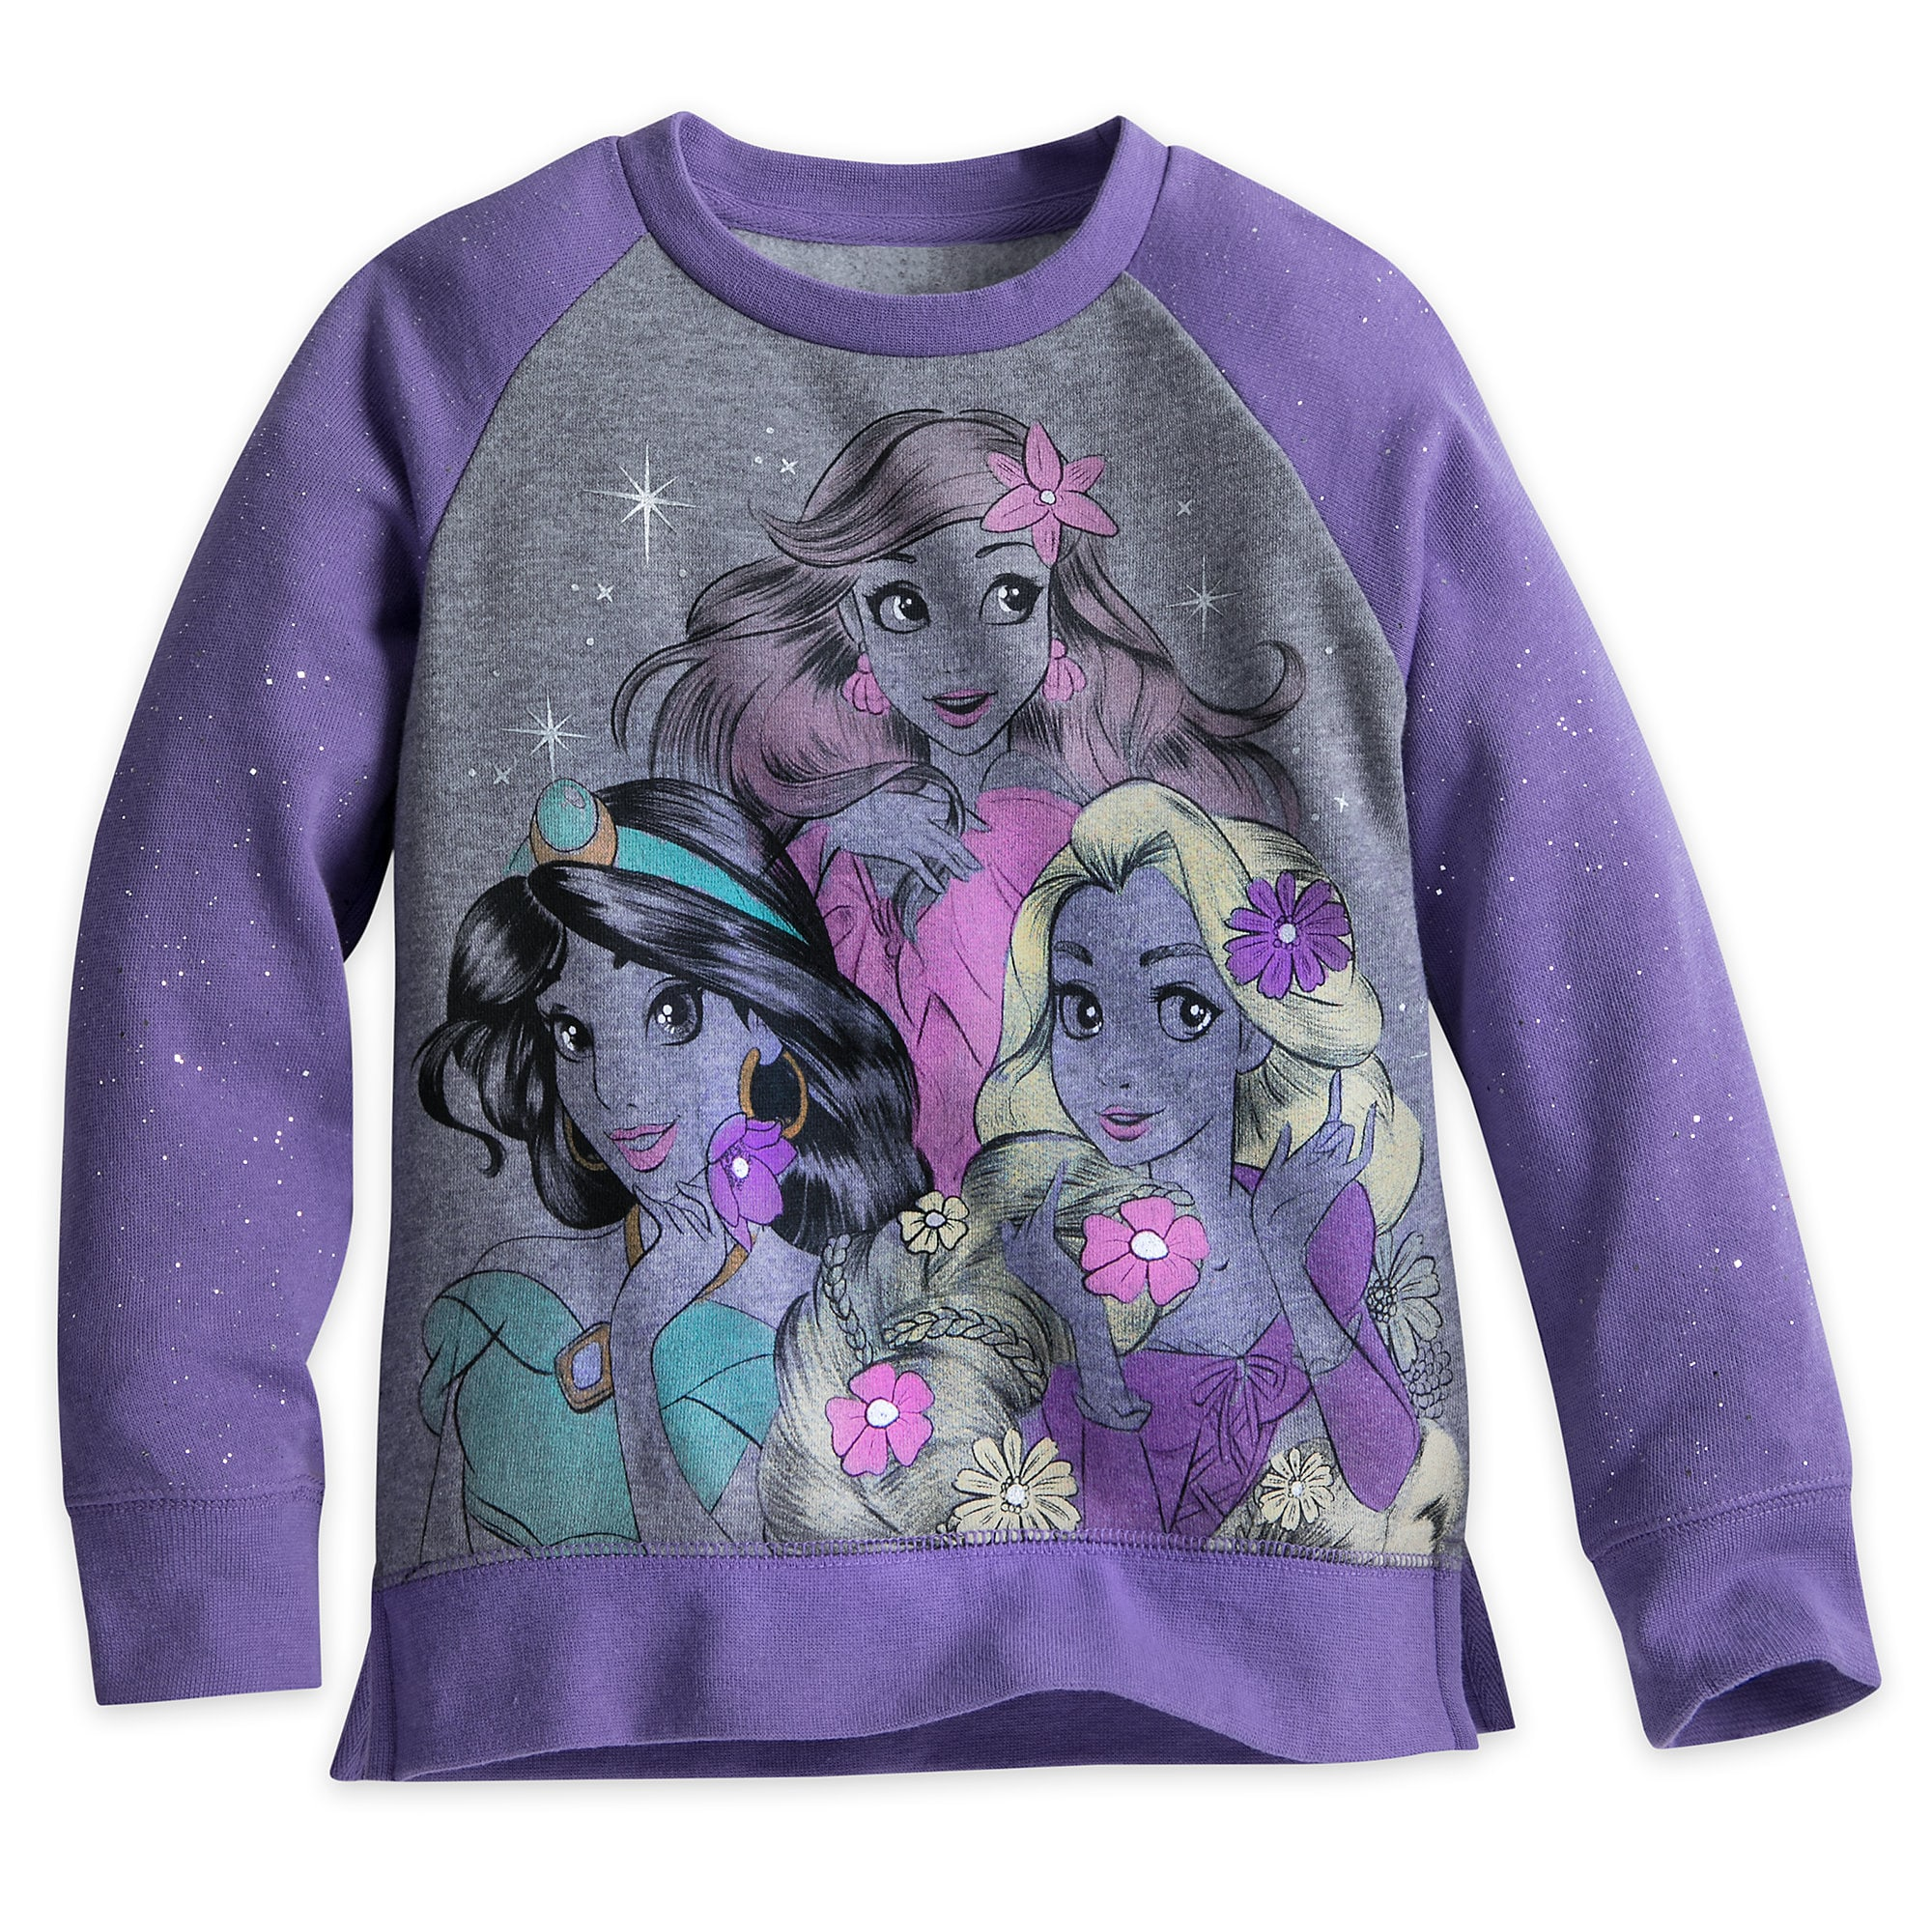 Disney Princess Sweatshirt for Girls